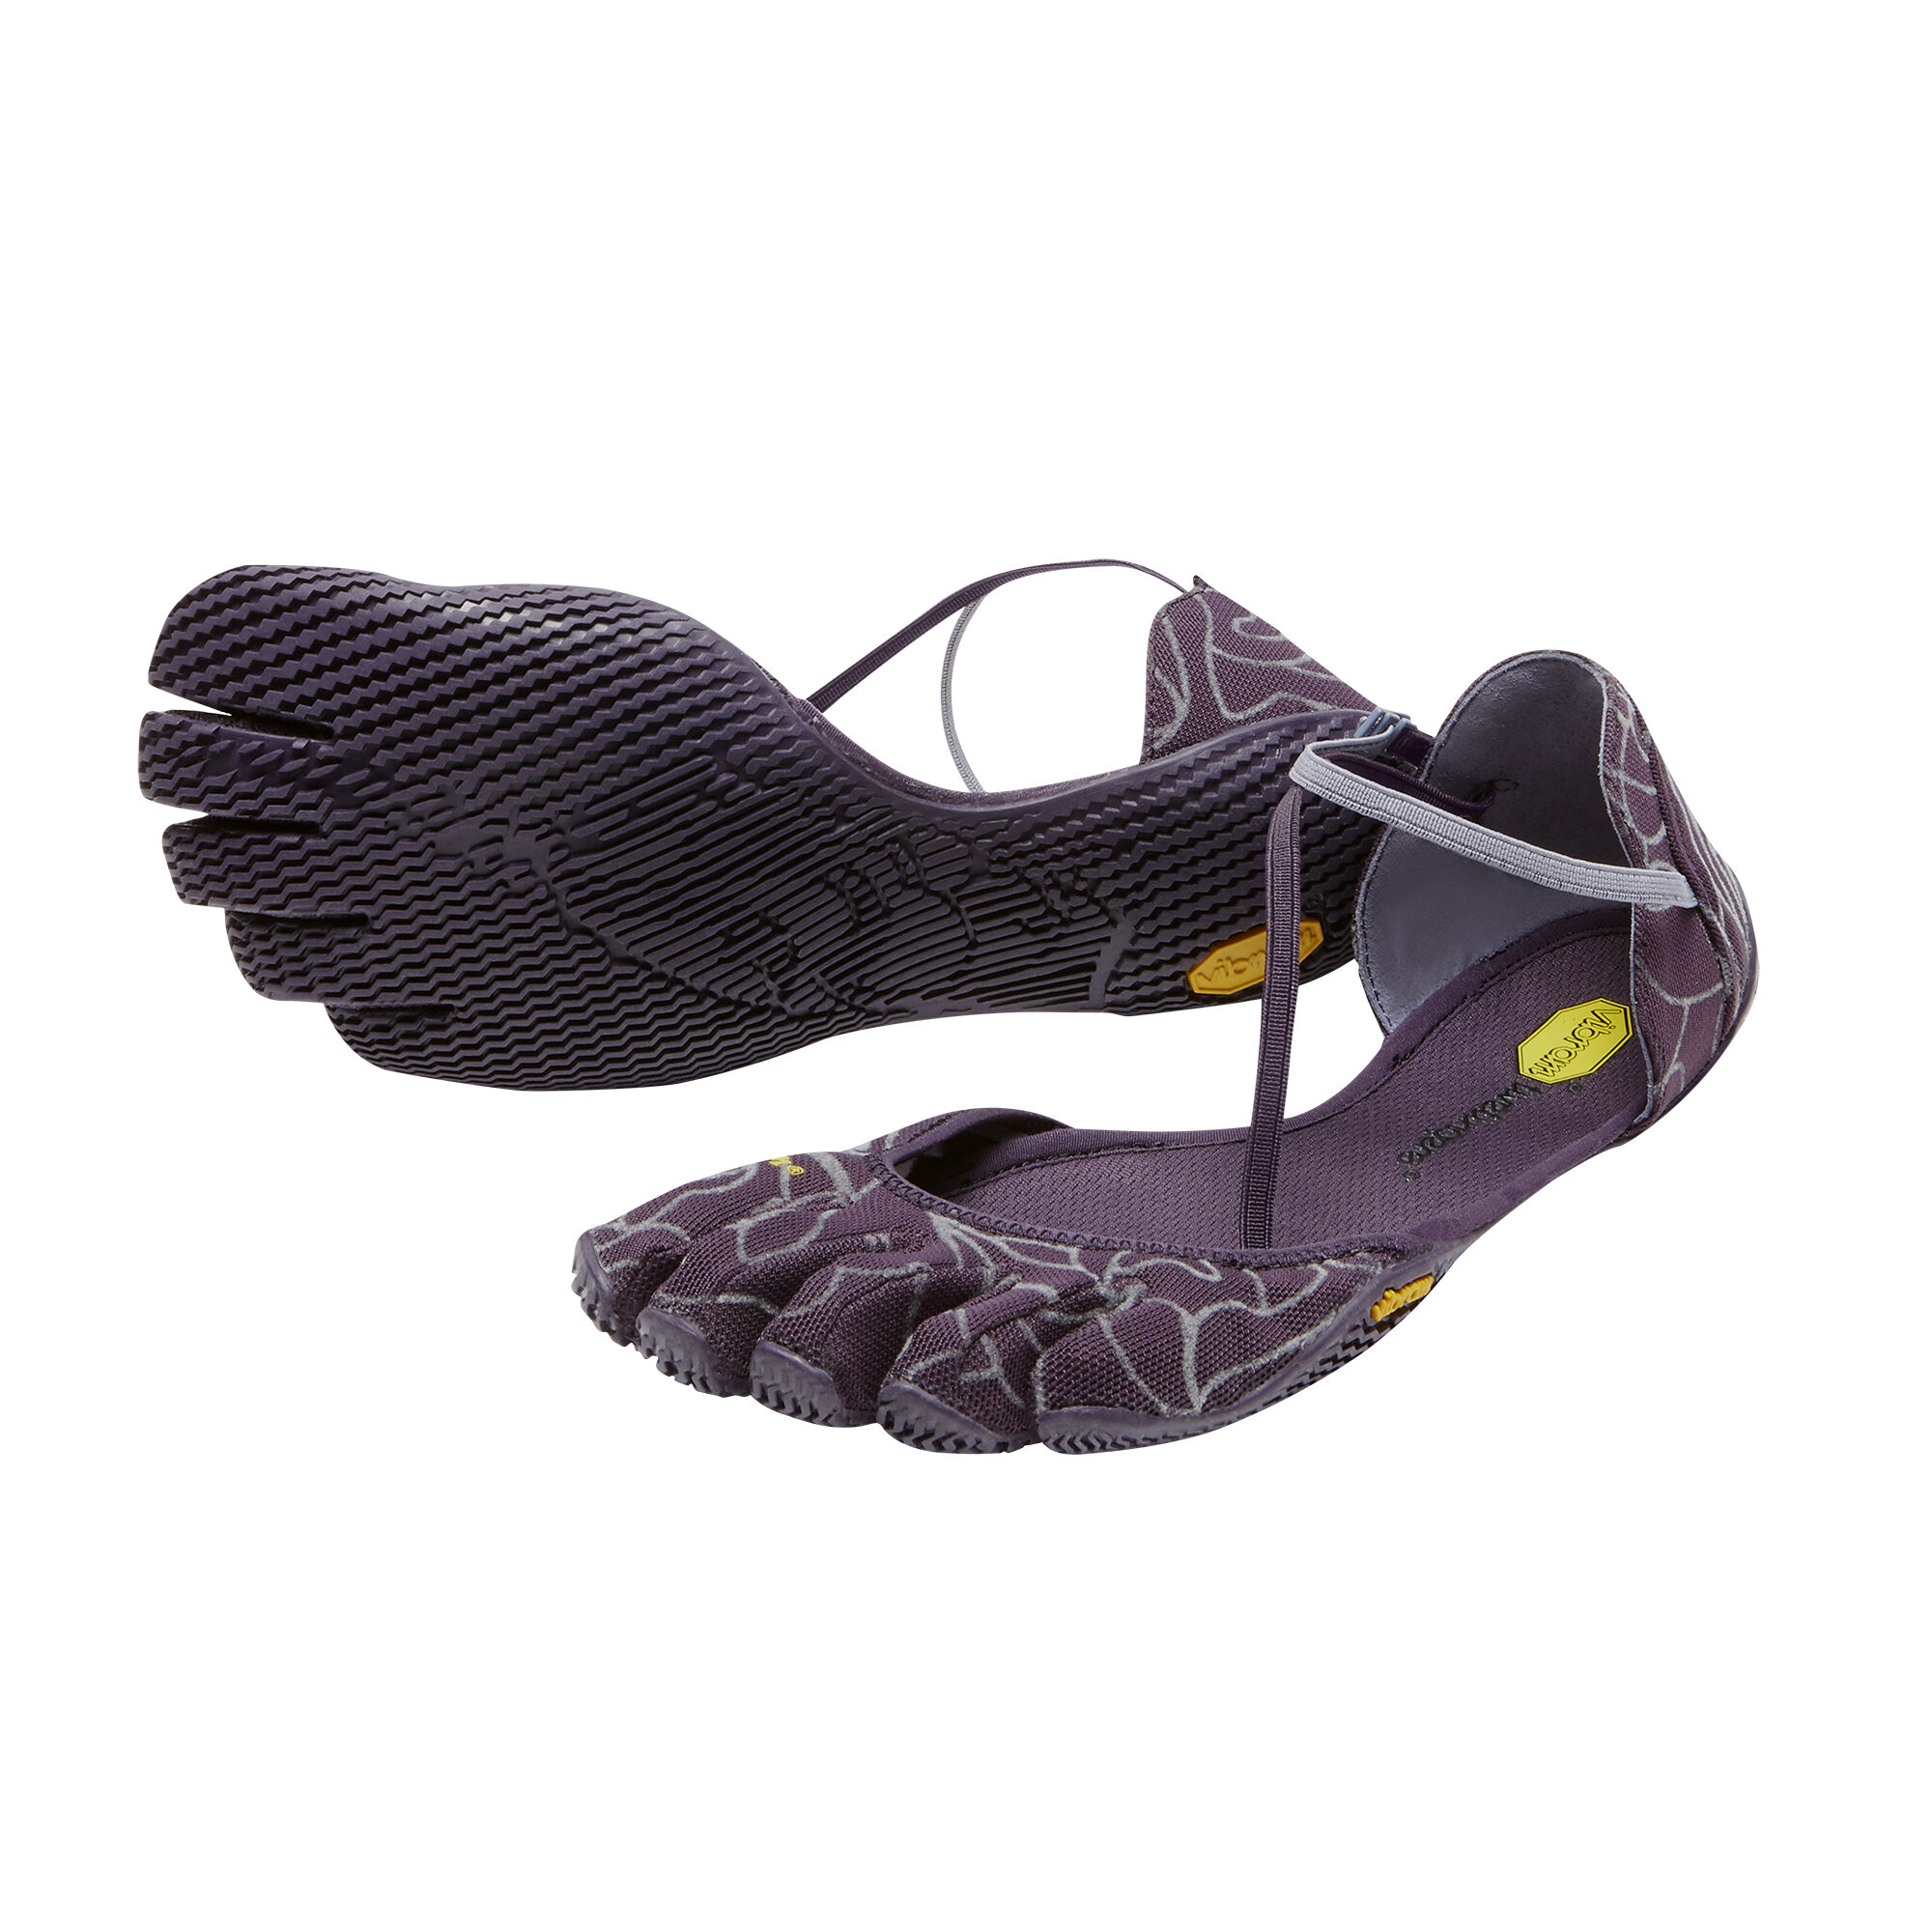 Womens VI S | Womens VI S FiveFinger Training and Fitness Shoes